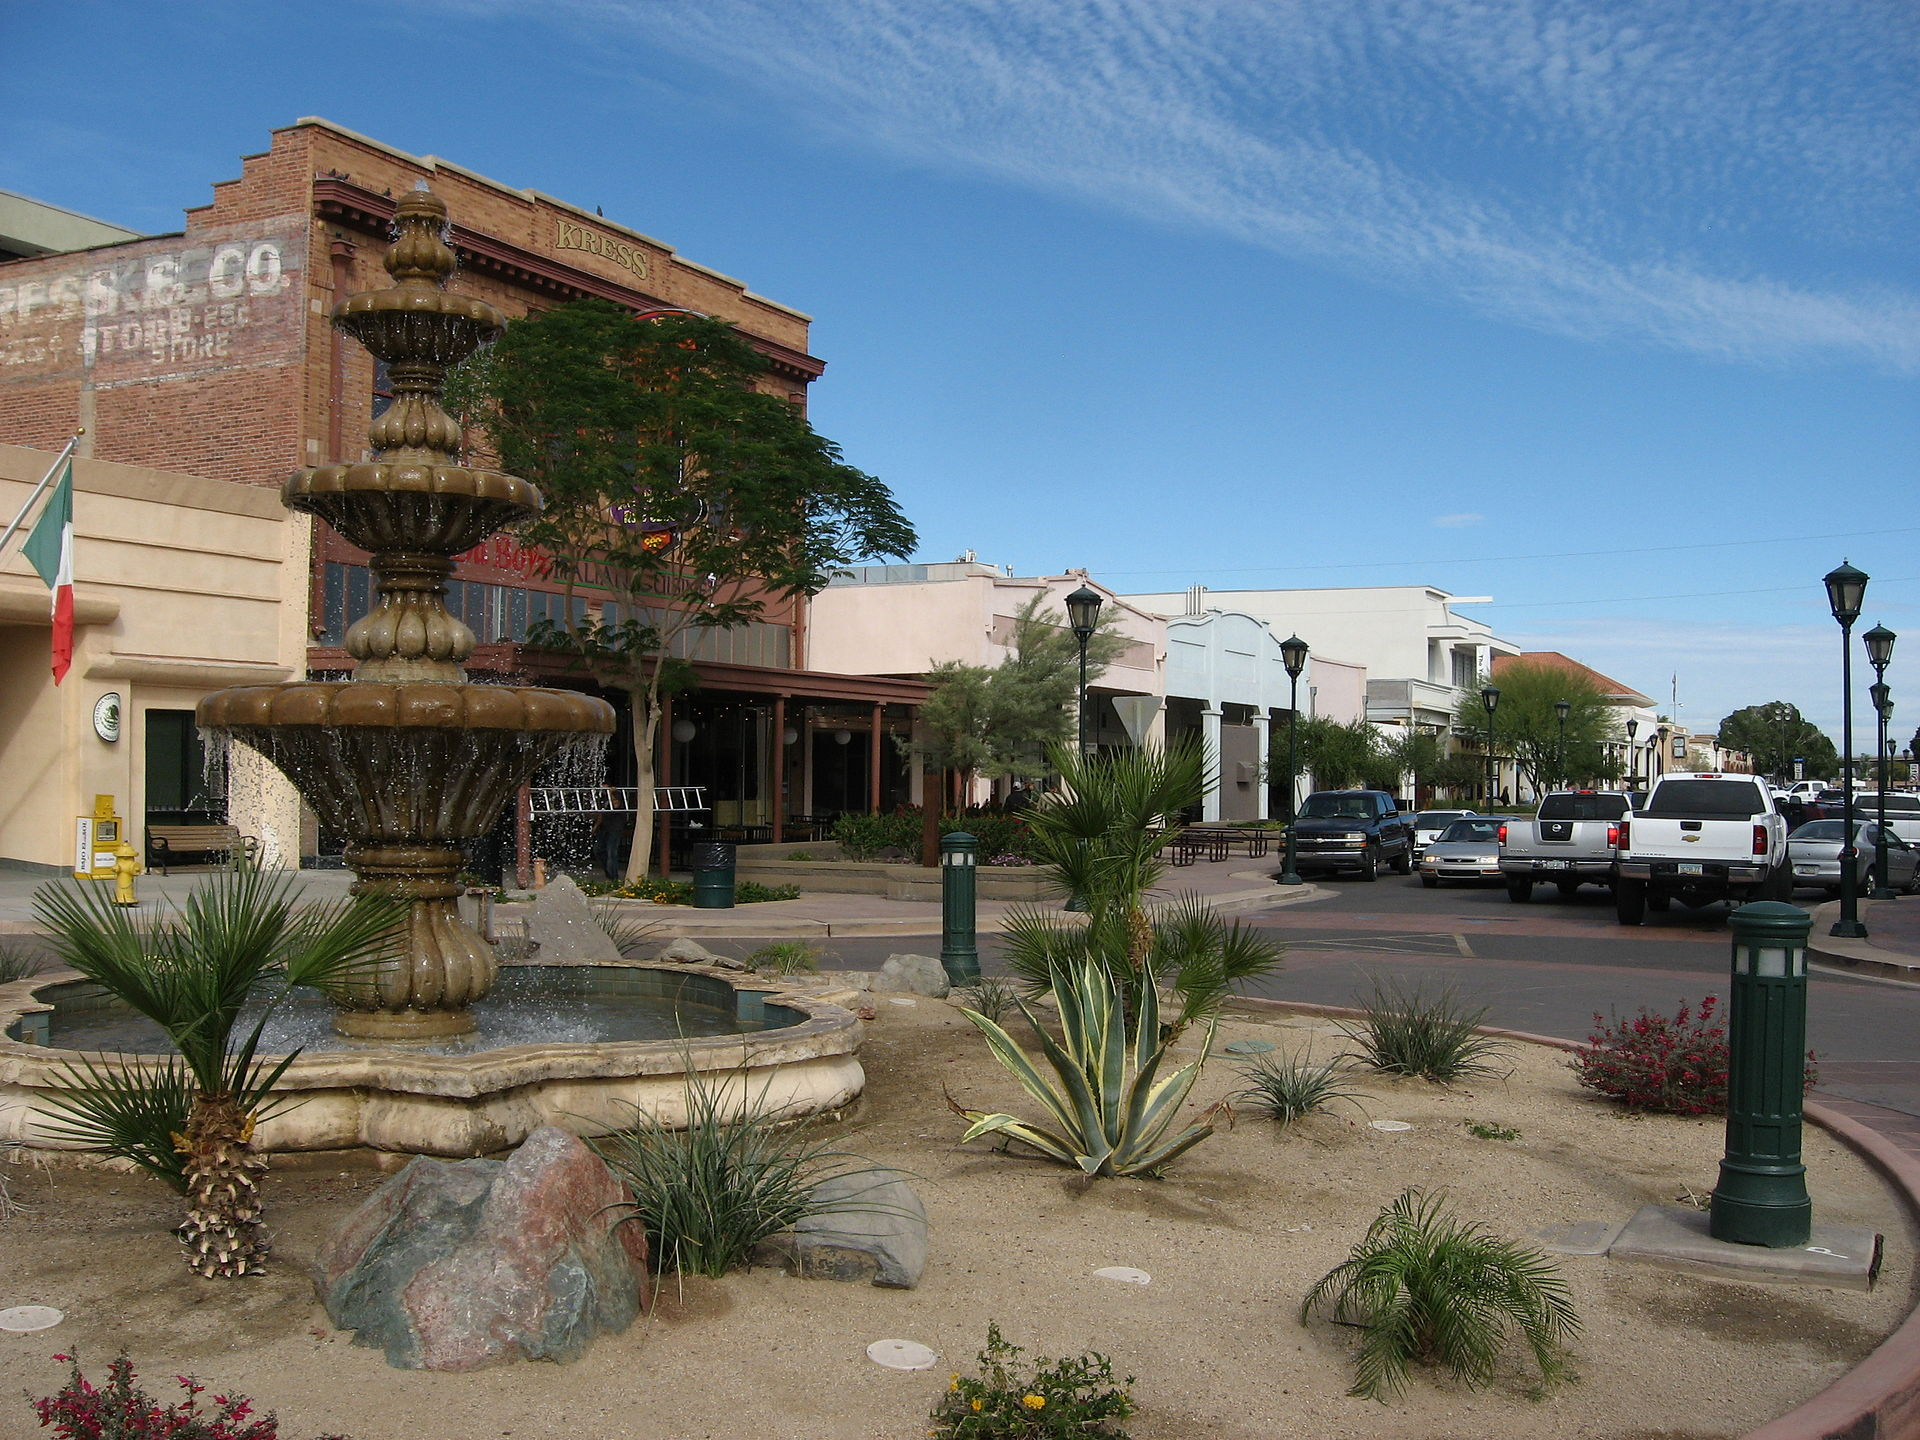 Downtown_Yuma_Arizona_(3)